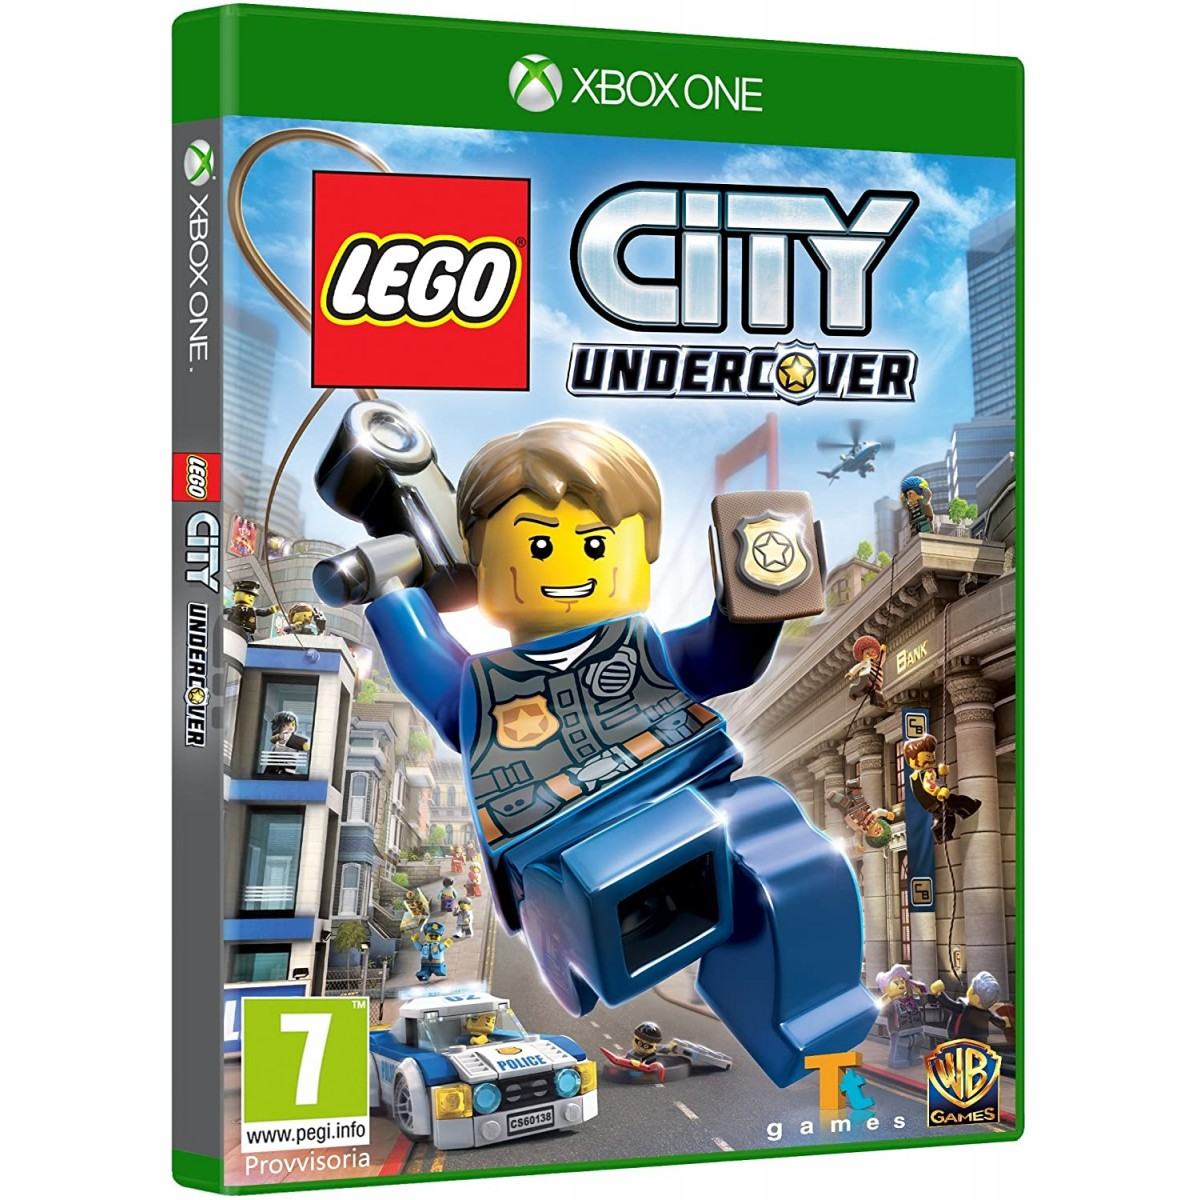 Videogame Lego City Undercover - Xbox One